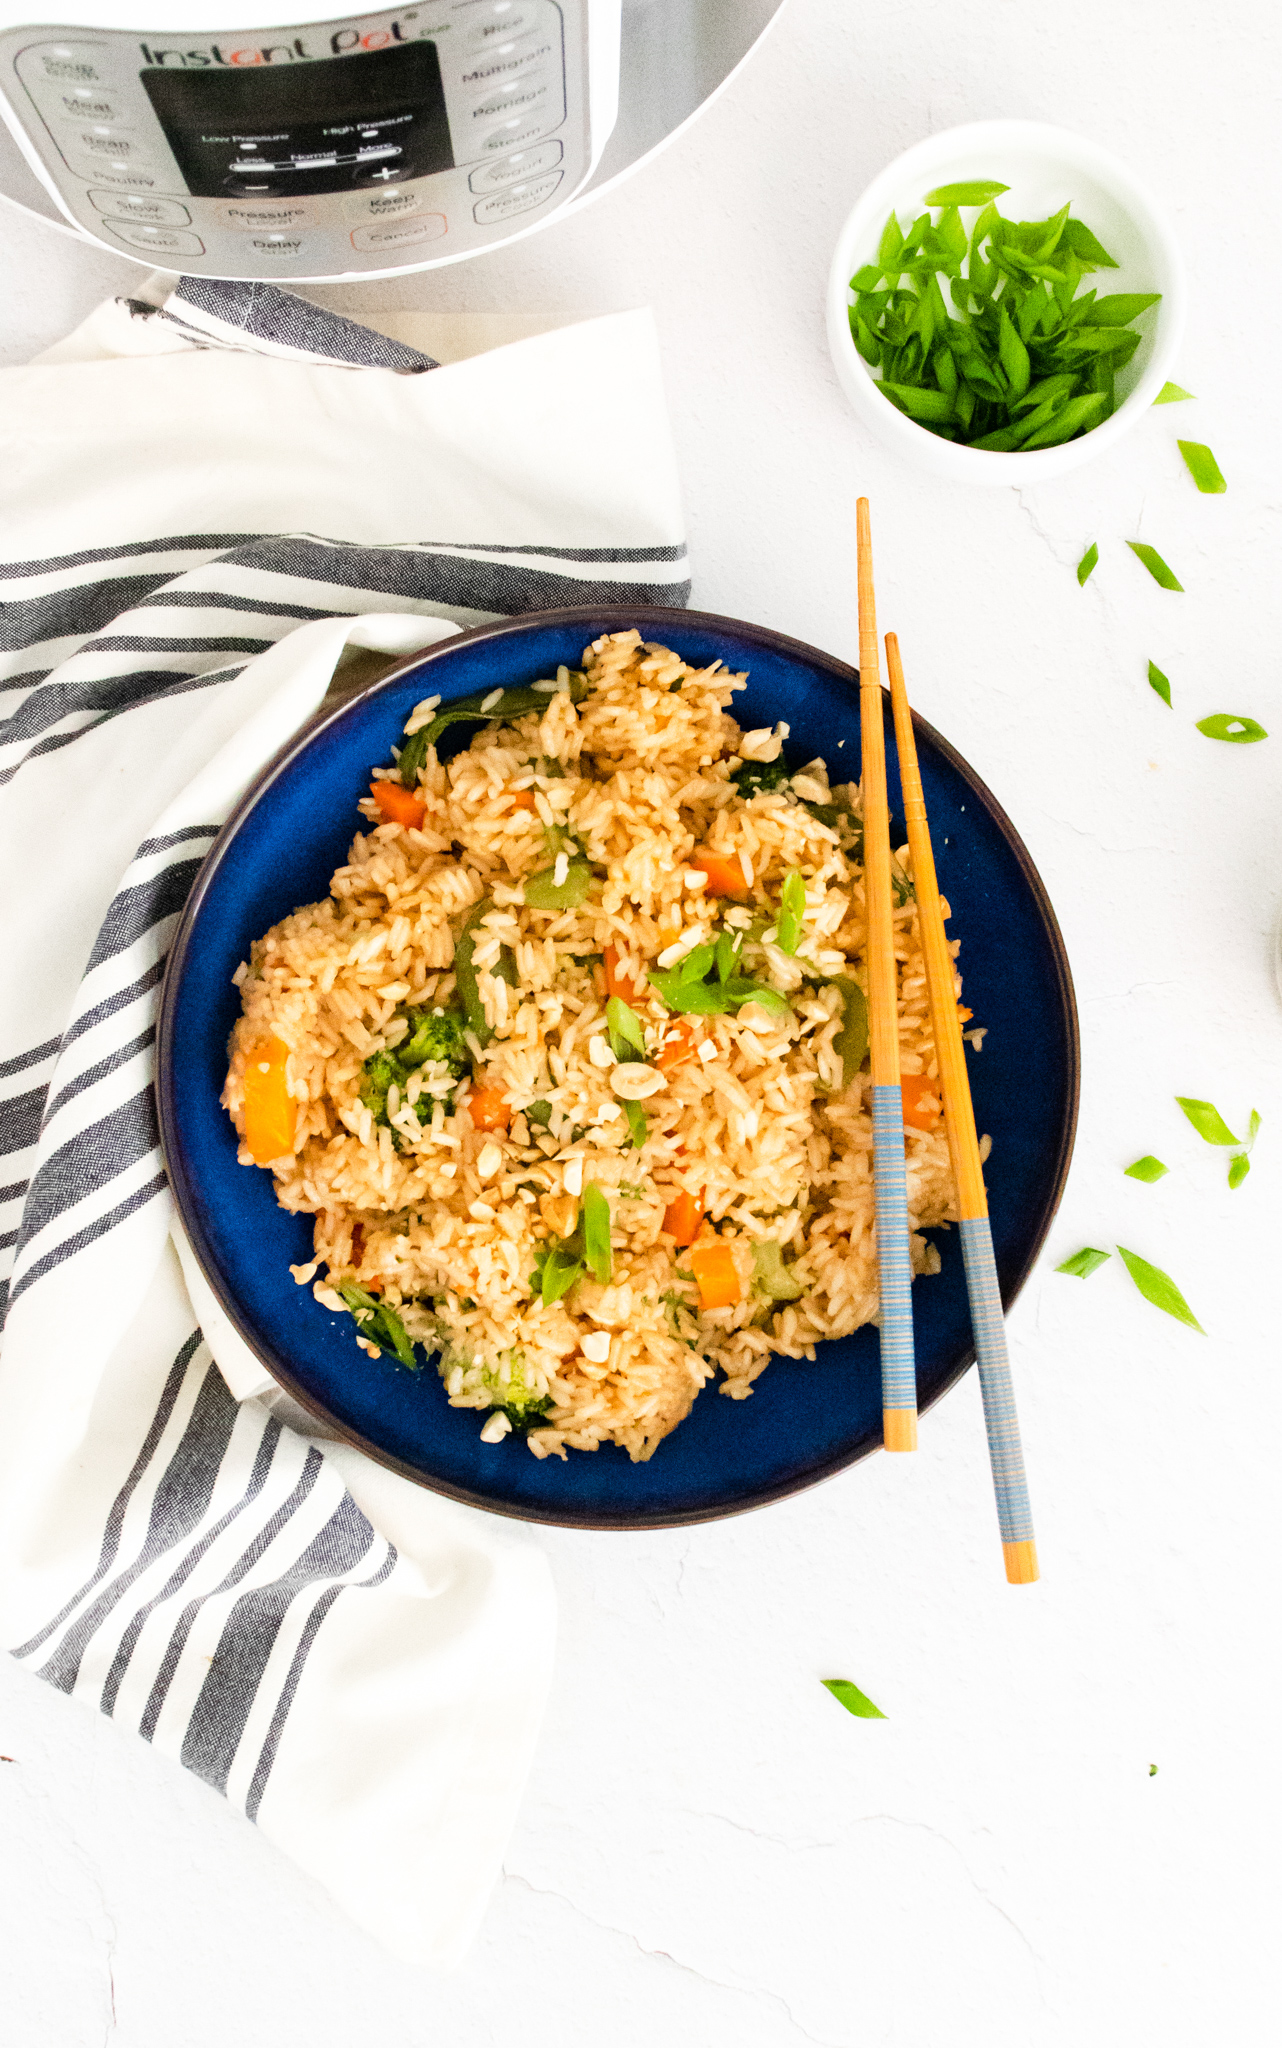 Instant Pot Fried Rice with chopsticks in a blue bowl.